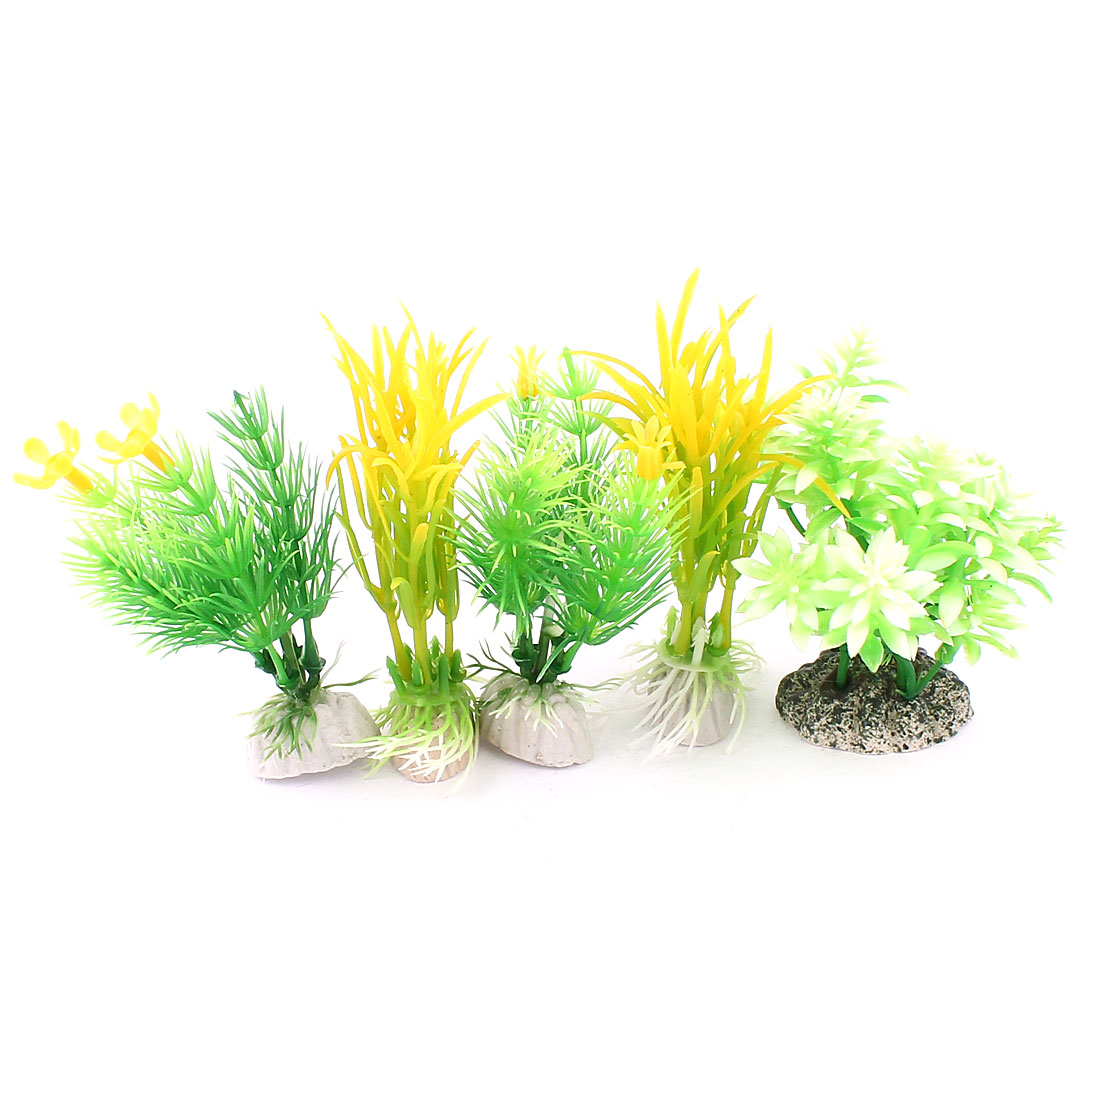 5 Pcs 9cm High Green Yellow Plastic Simulation Grass Plant Adorn for Fish Tank